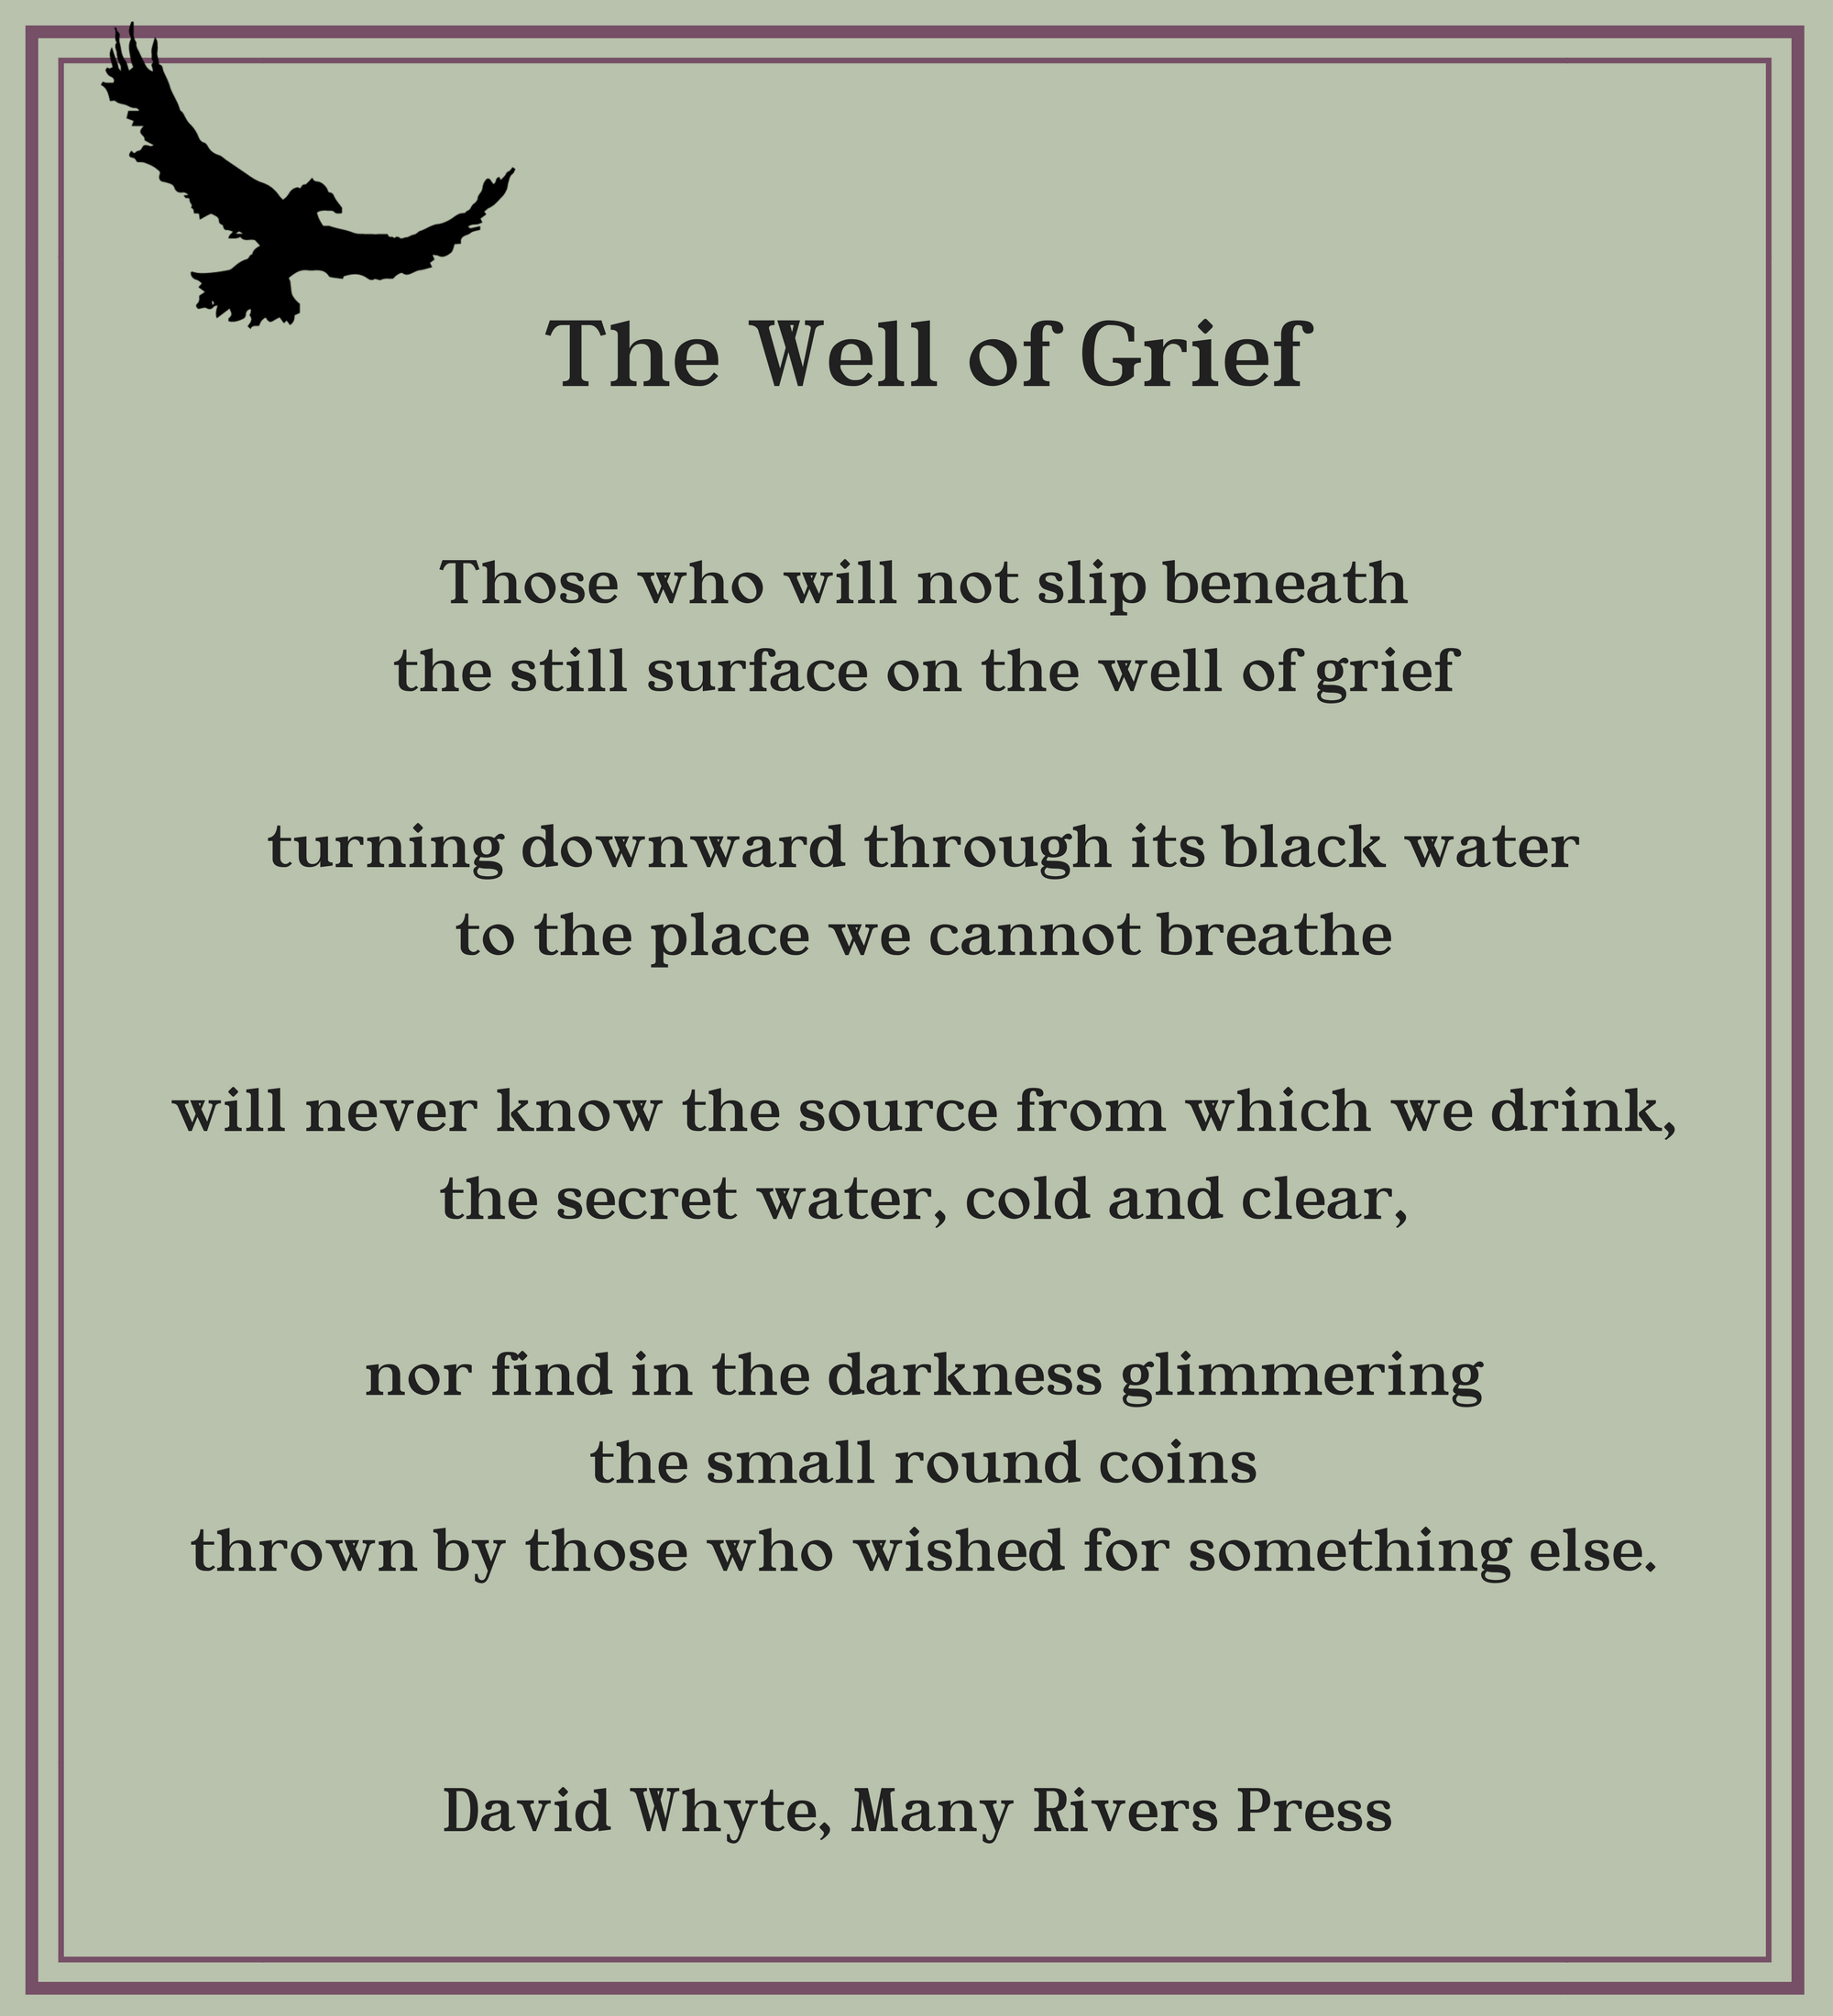 The Well of Grief (2).png